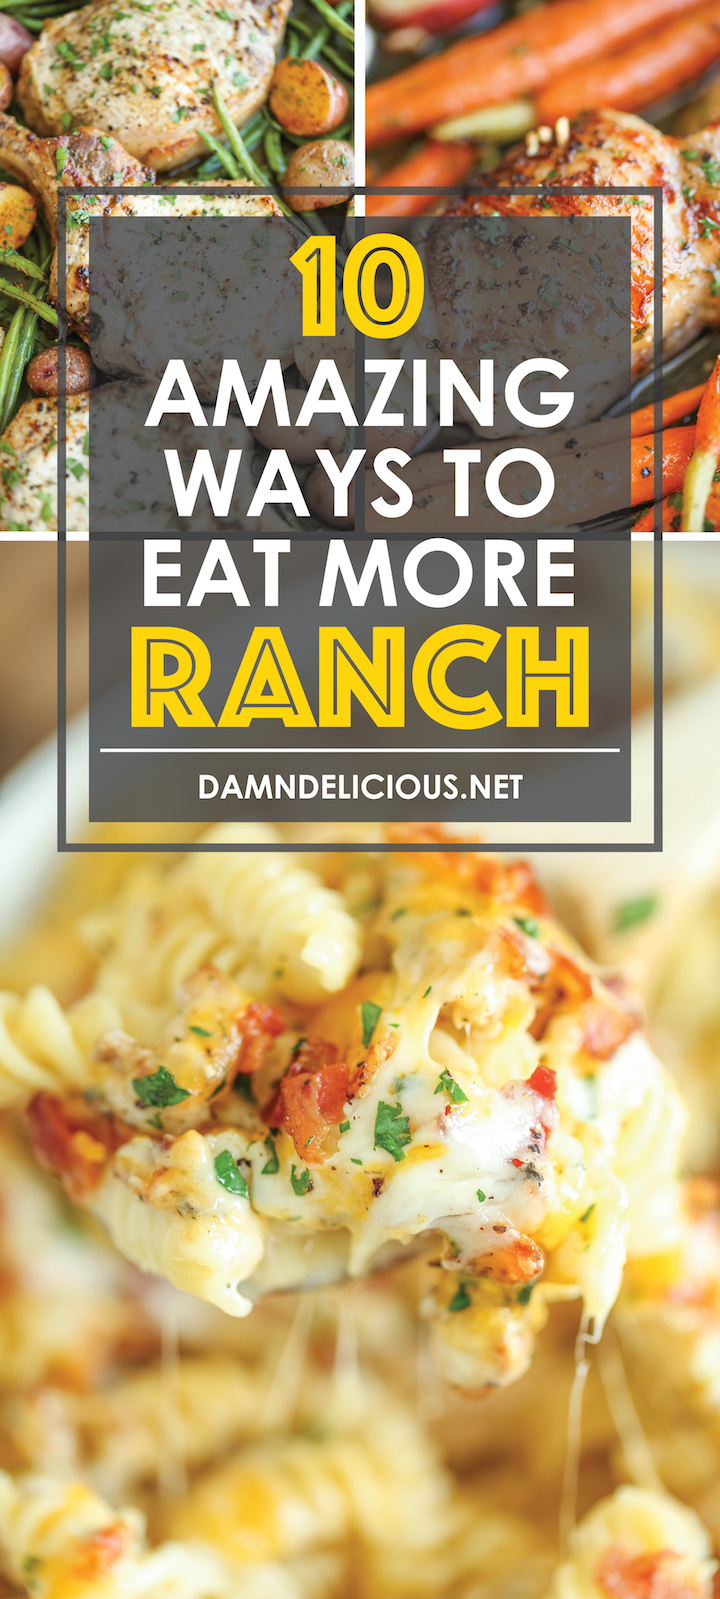 10 Amazing Ways to Eat More Ranch - These are all for you Ranch-lovers out there! From sides to mains to apps, you'll be able to get your Ranch fix anytime!